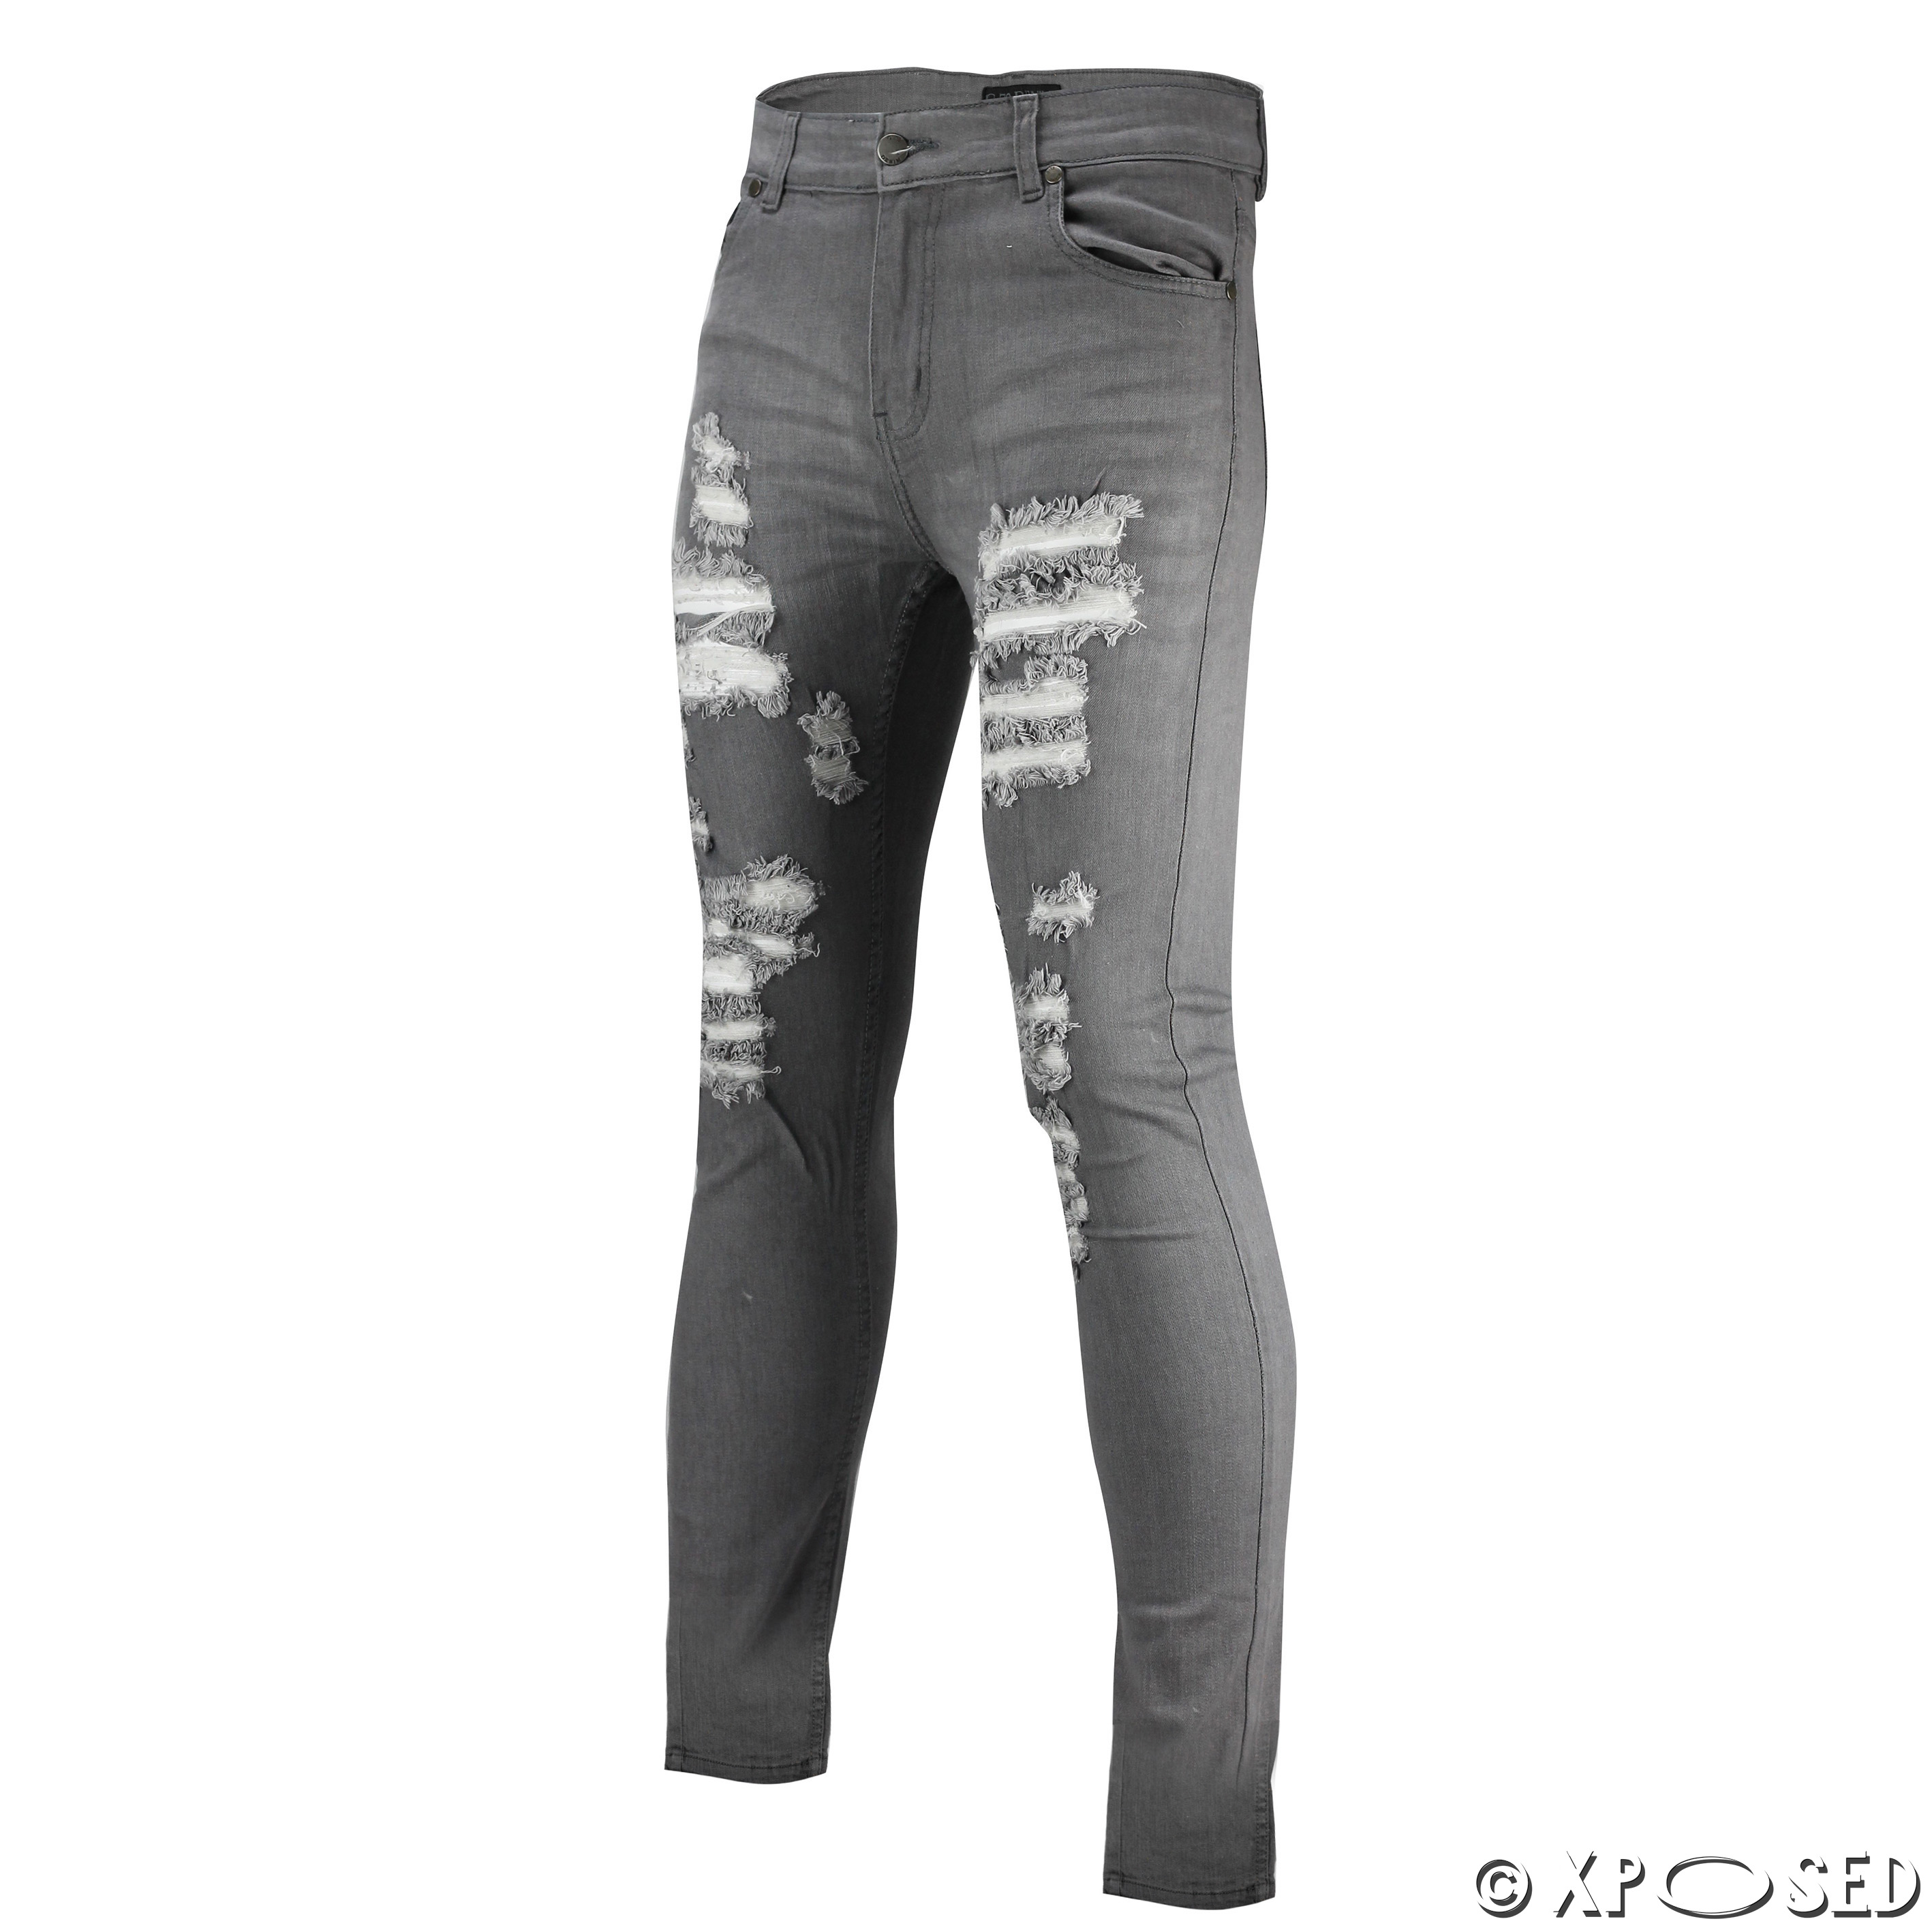 Super skinny jeans with open rips